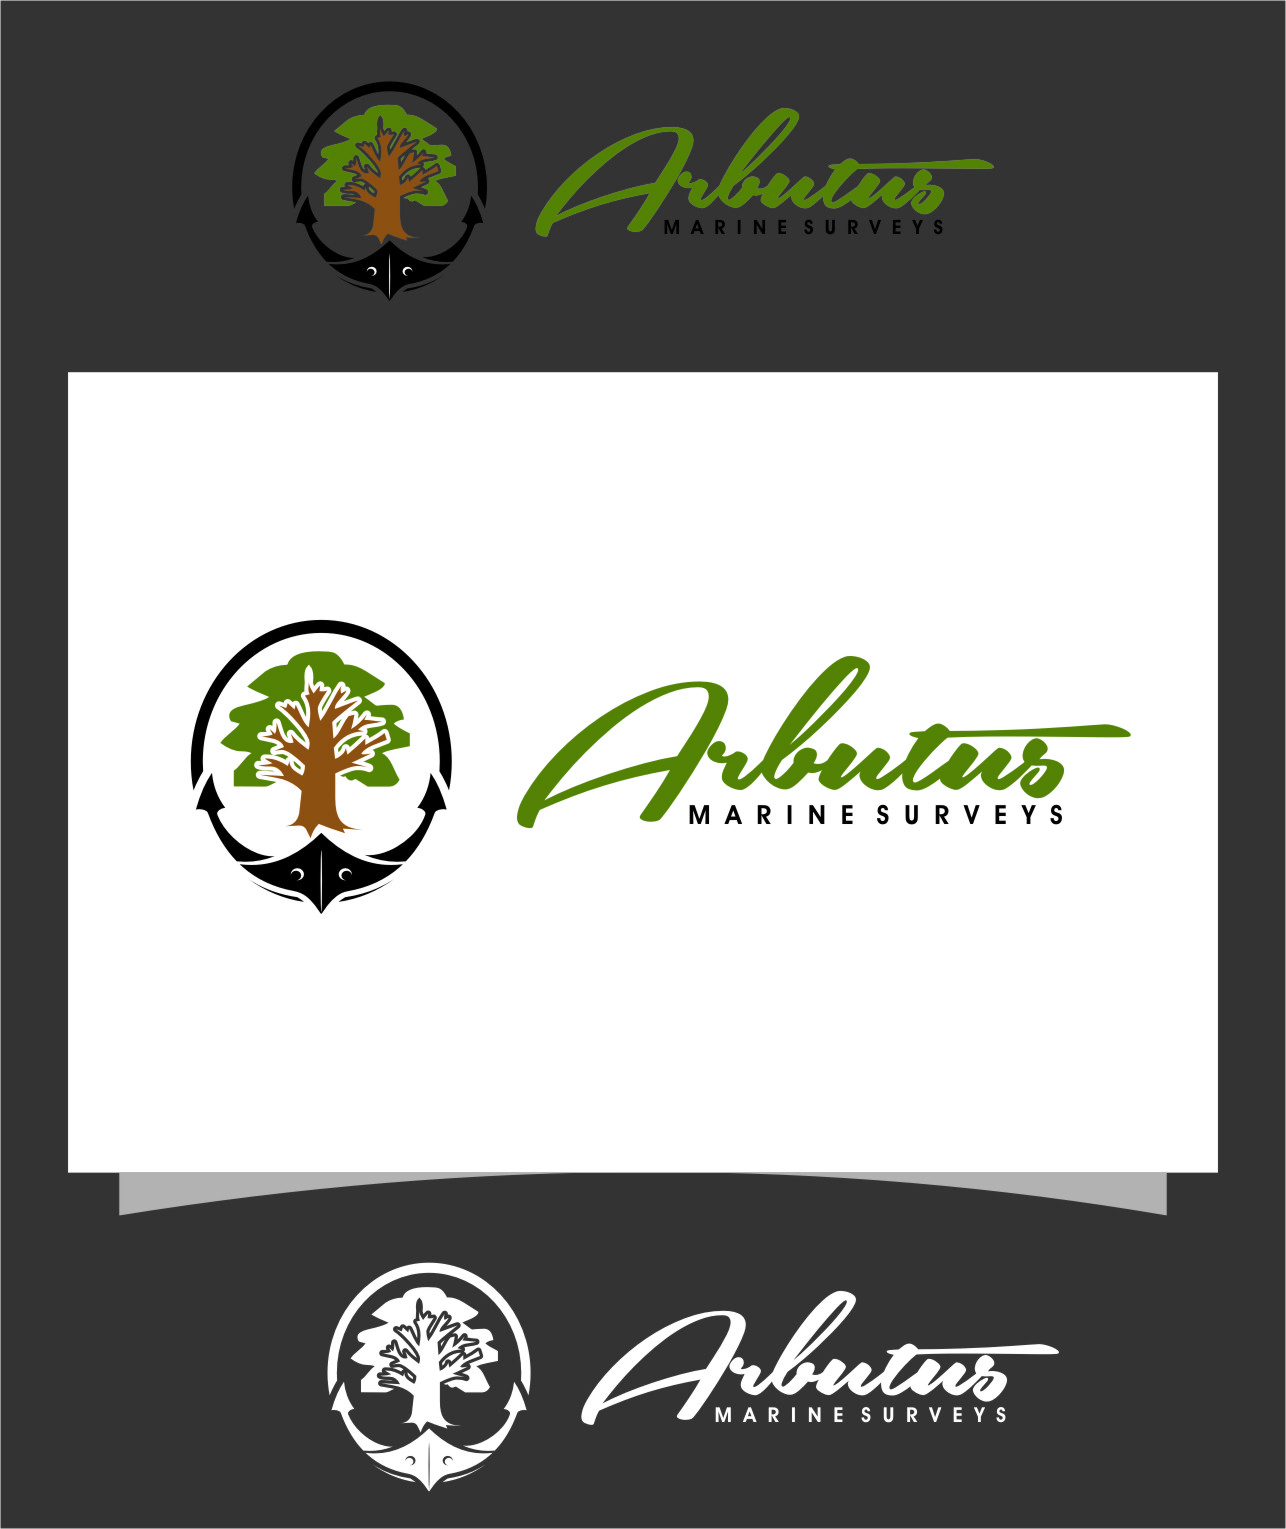 Logo Design by RasYa Muhammad Athaya - Entry No. 46 in the Logo Design Contest Professional Business Logo Design for Arbutus Marine Surveys.